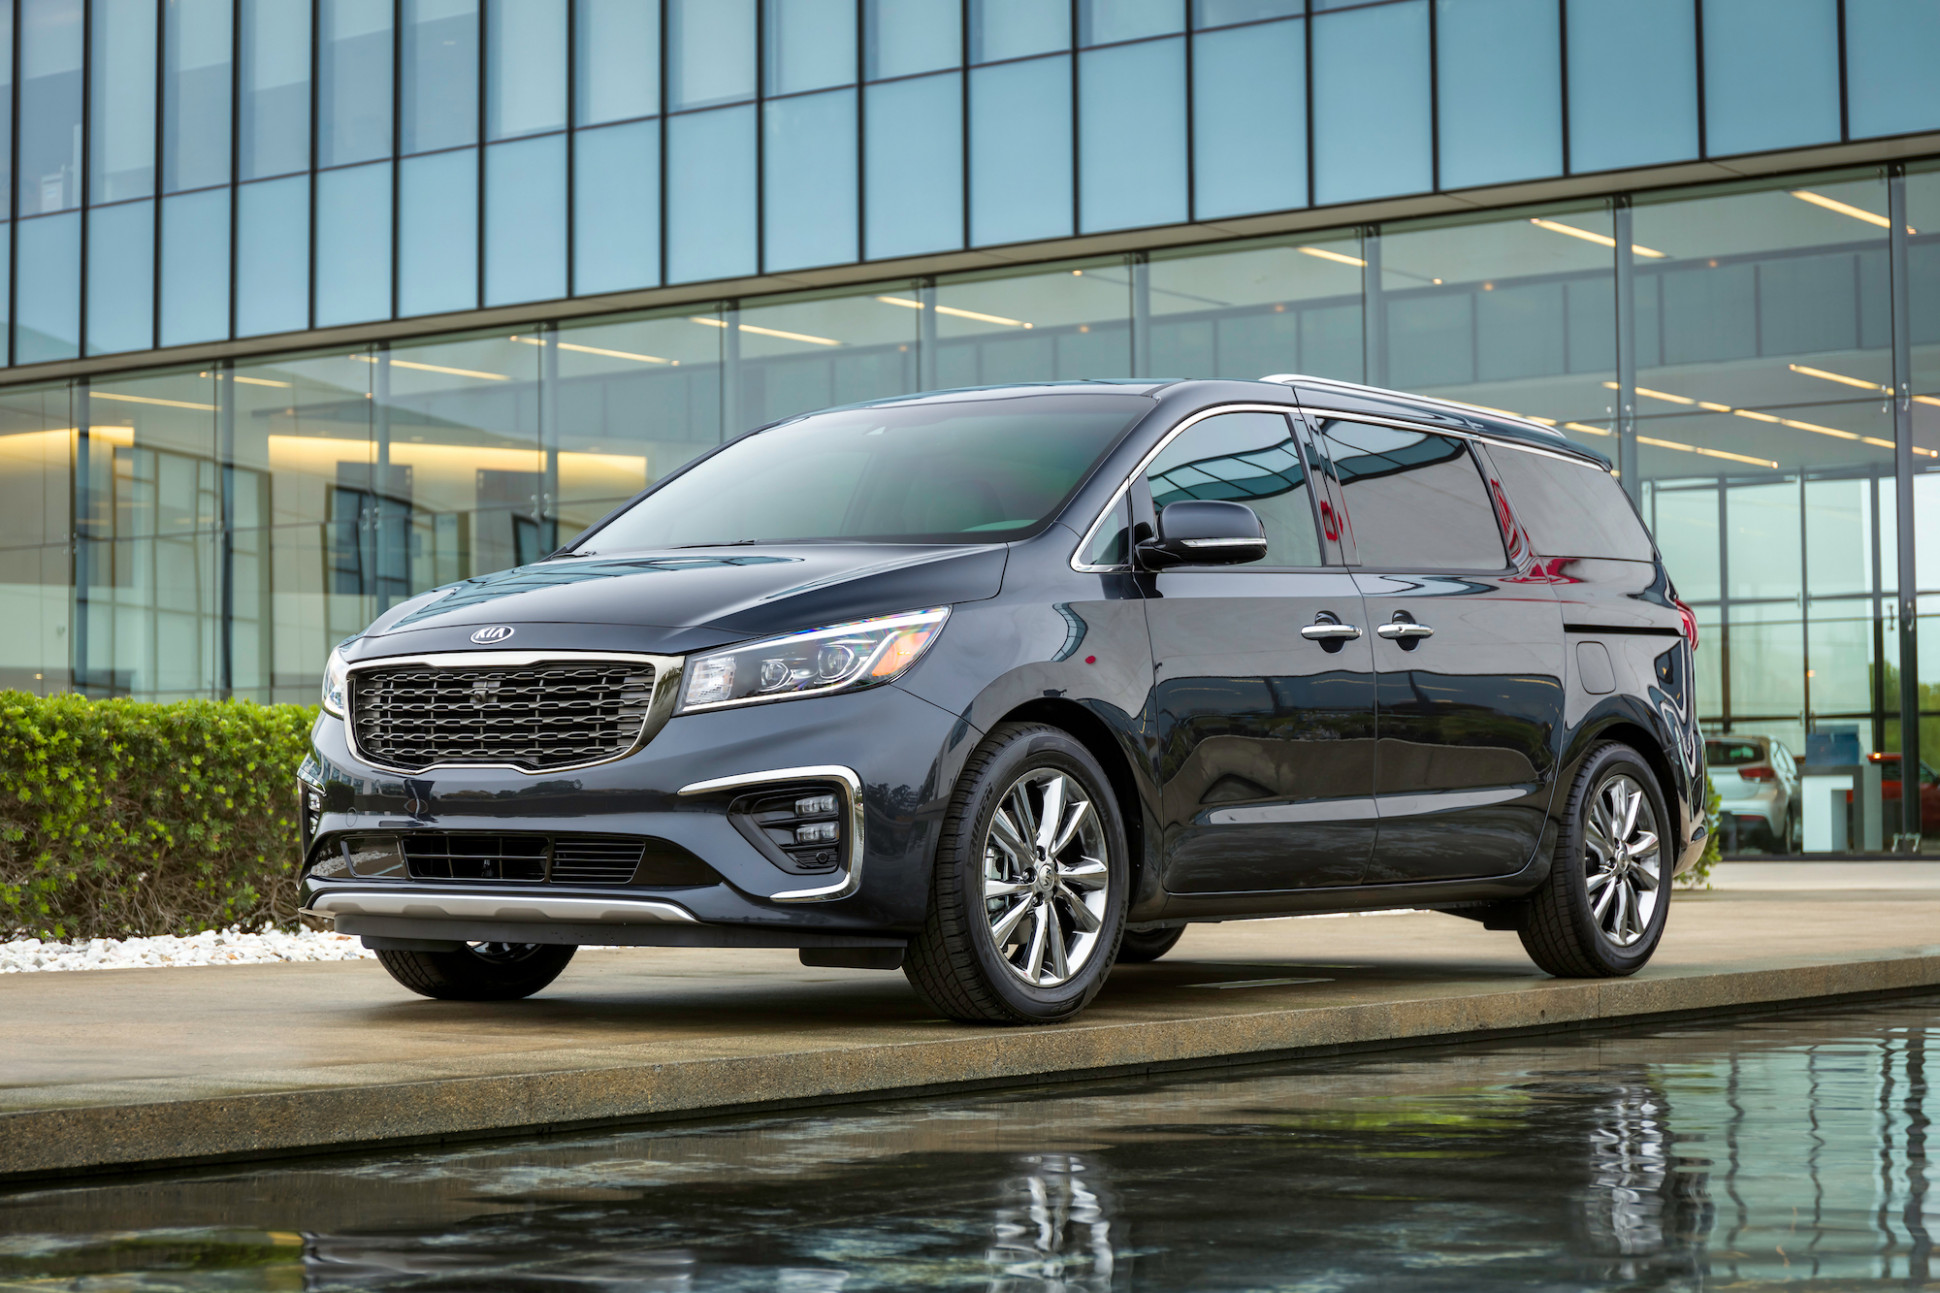 7 Kia Sedona Review, Ratings, Specs, Prices, and Photos - The ..